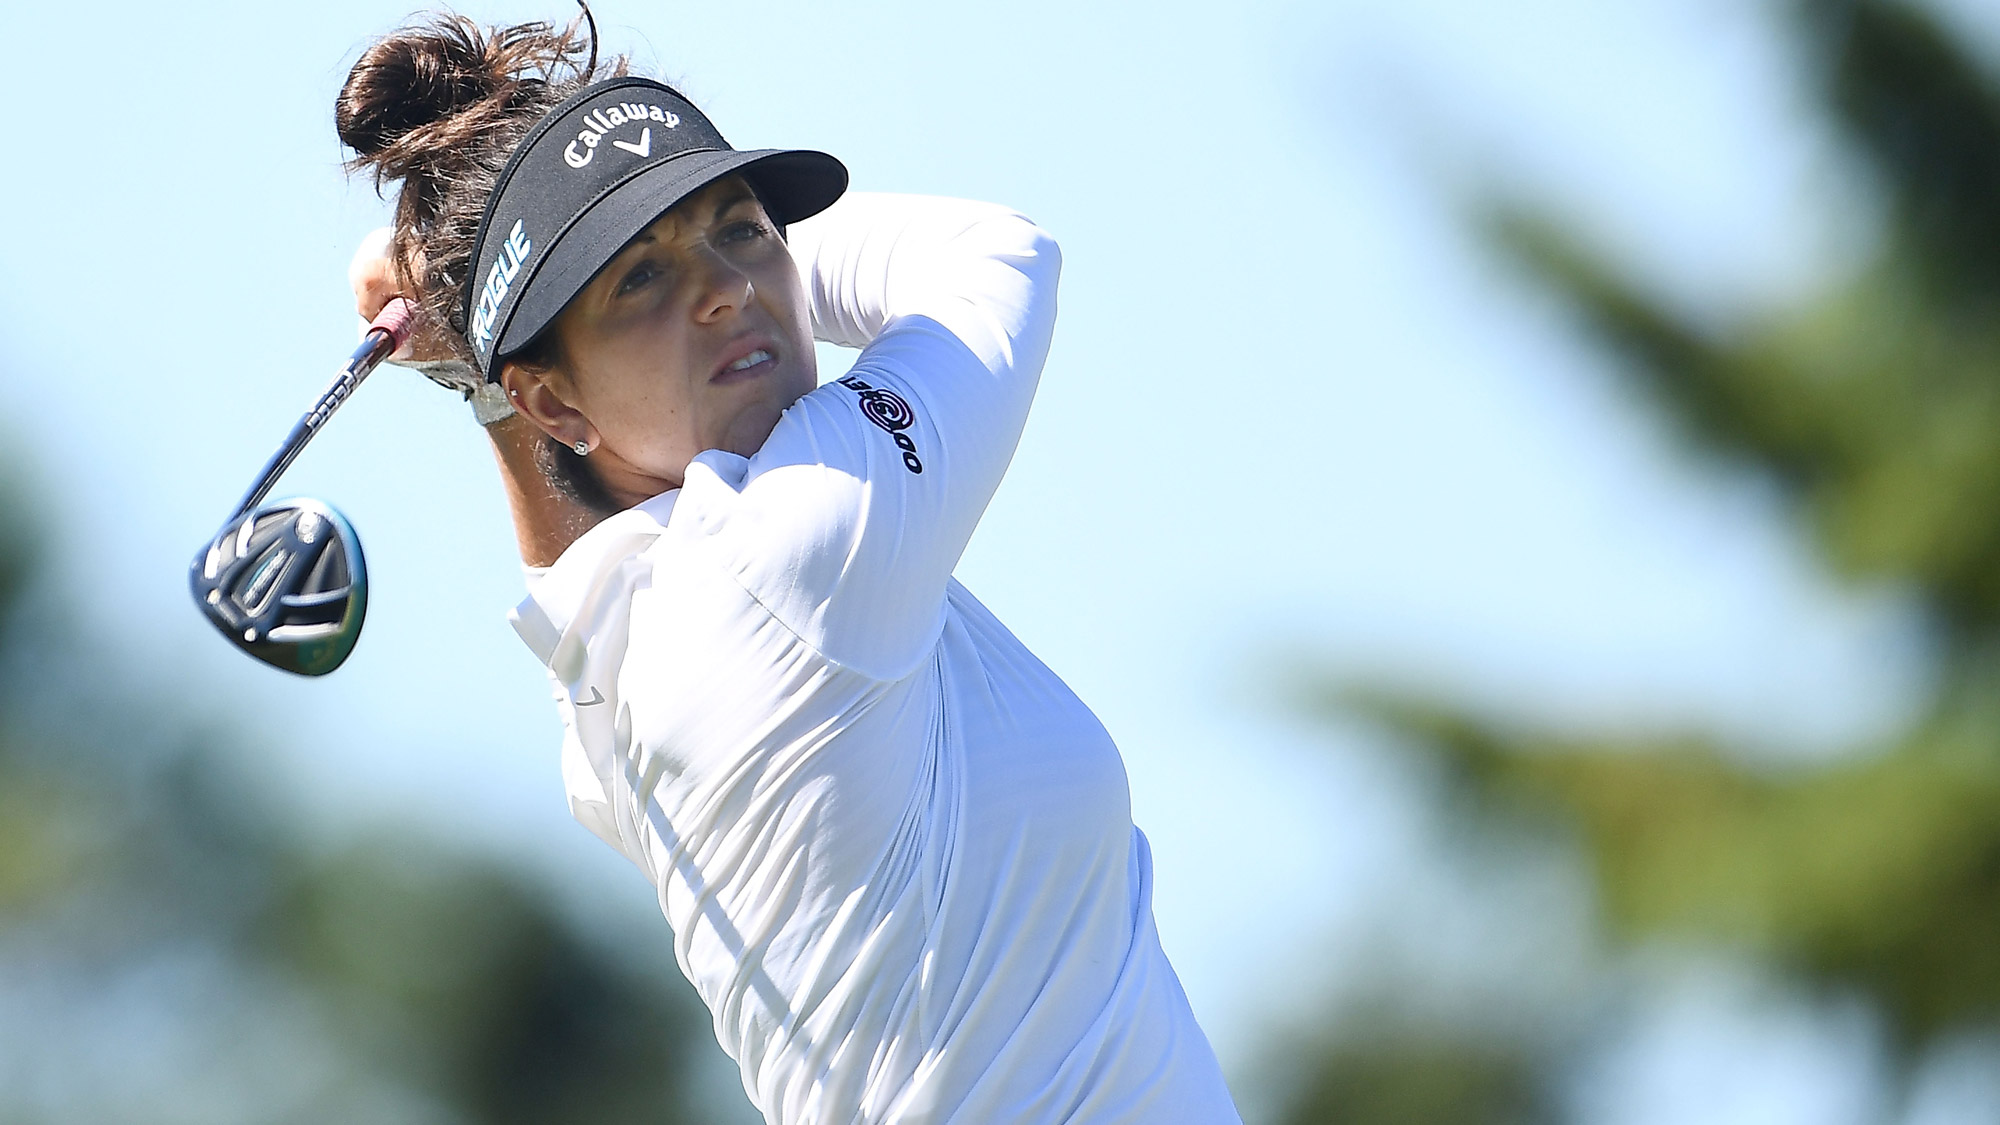 Emma Talley Swings on Friday at the Thornberry Creek LPGA Classic